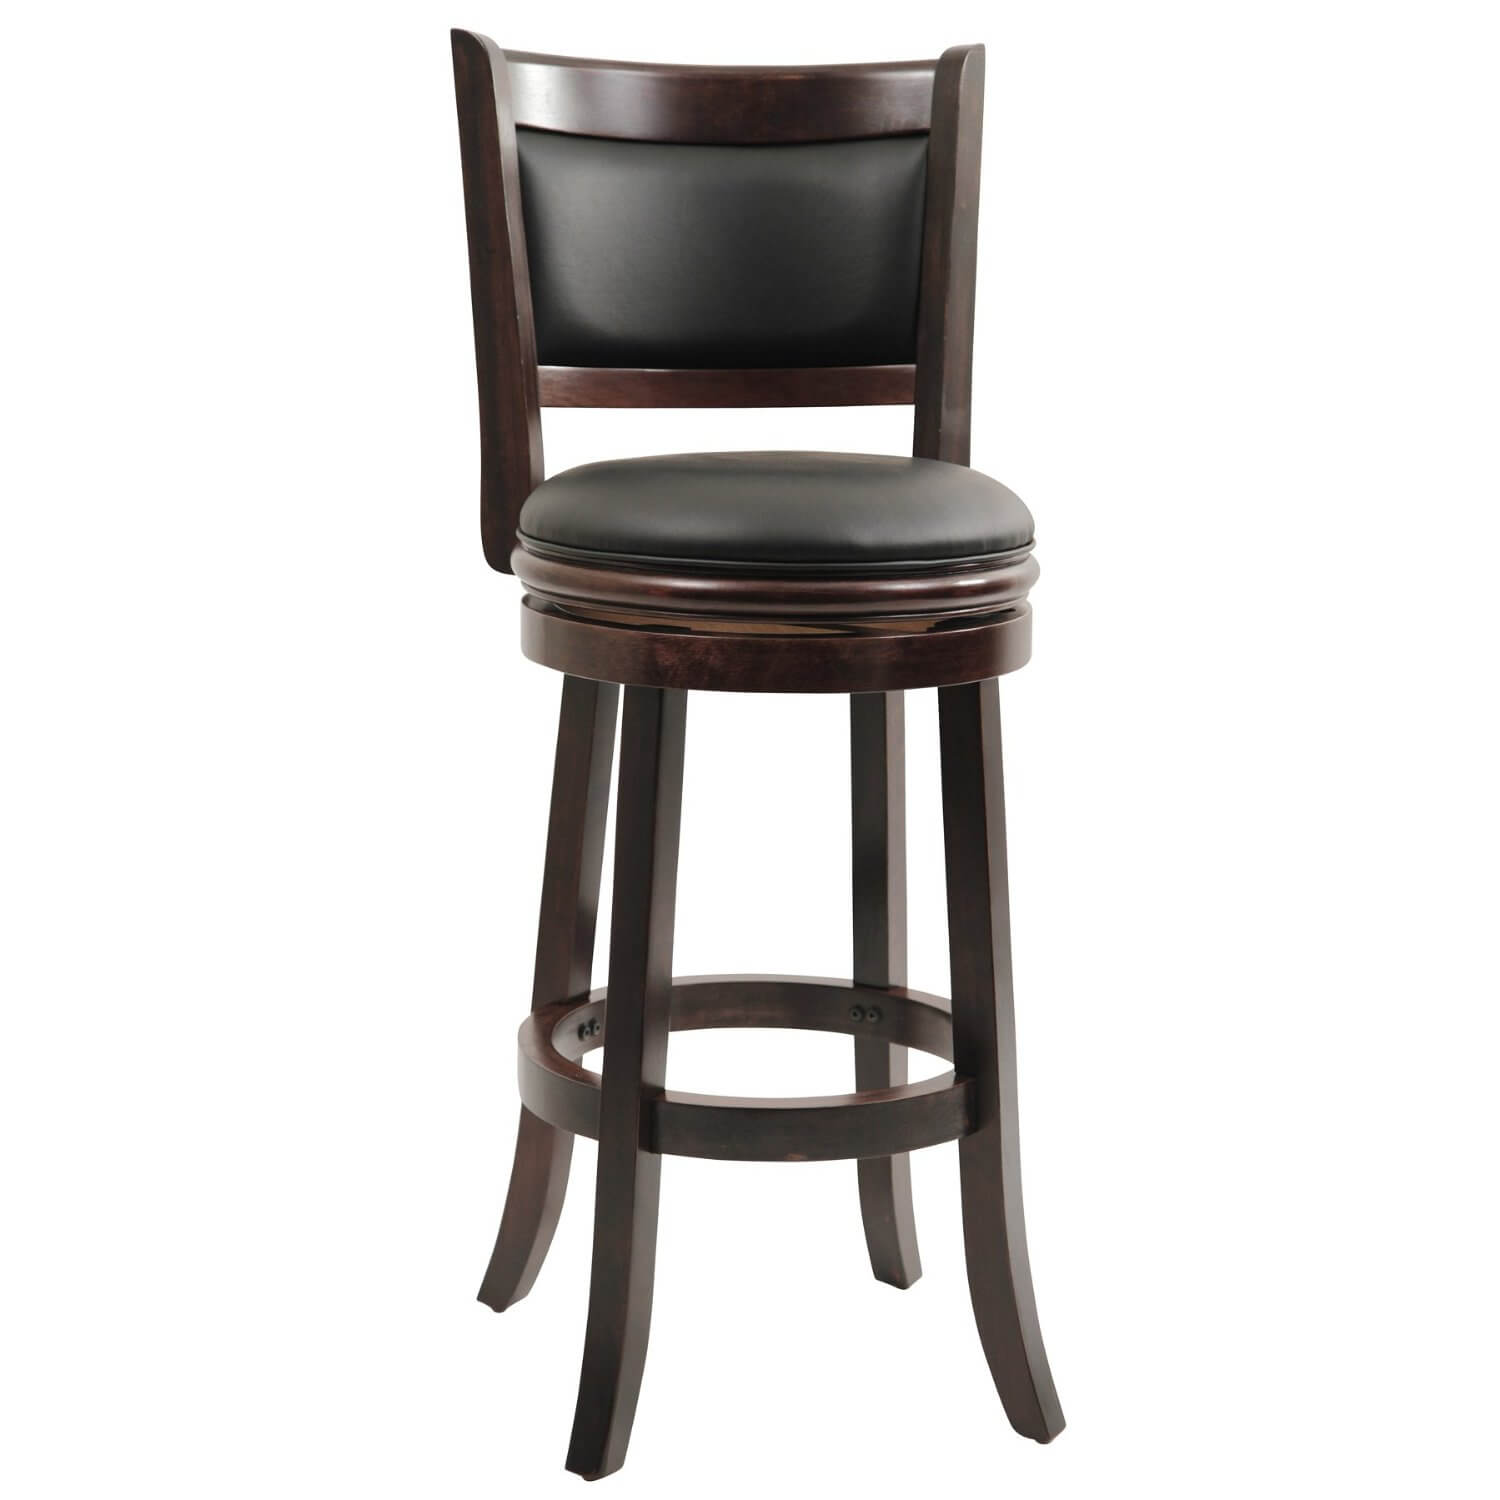 Bar Stools Amart 52 Types Of Counter And Bar Stools Buying Guide